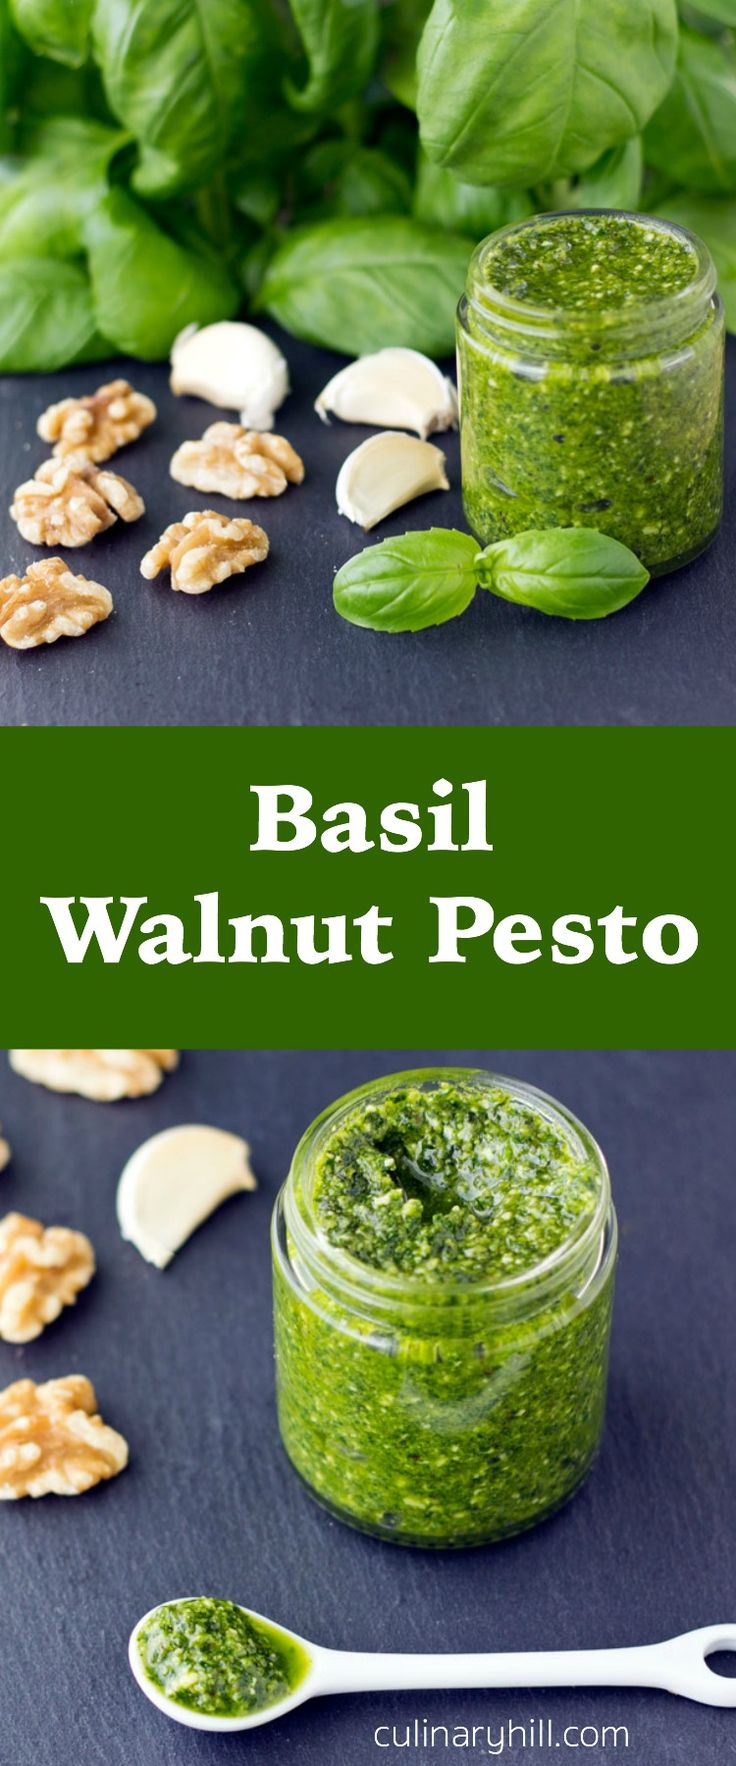 Basil Walnut Pesto comes together in about 15 minutes with just 4 ingredients. Great for pasta, sandwich spreads, and soup garnishing! Freezer-friendly.